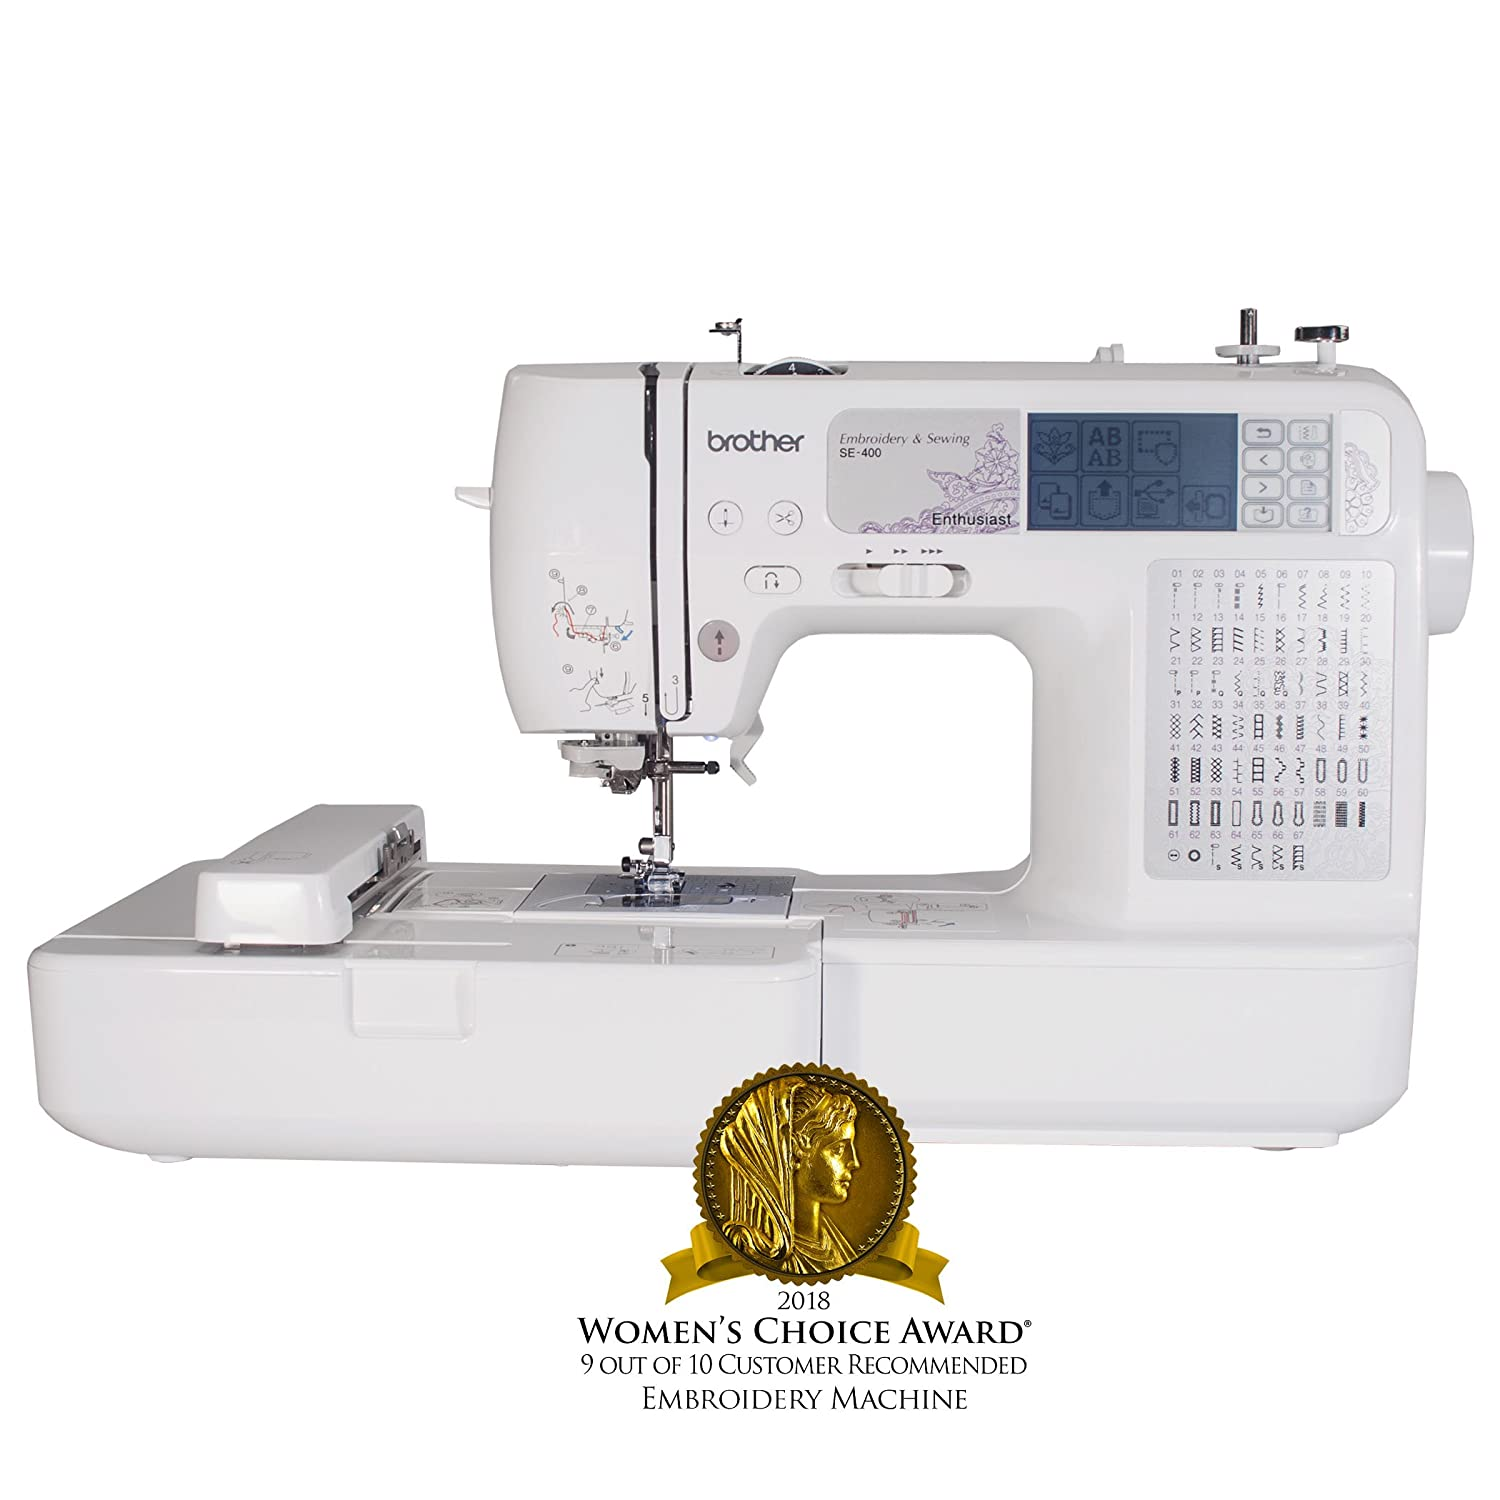 Top 10 Best Heavy Duty Sewing Machine Reviews in 2020 6